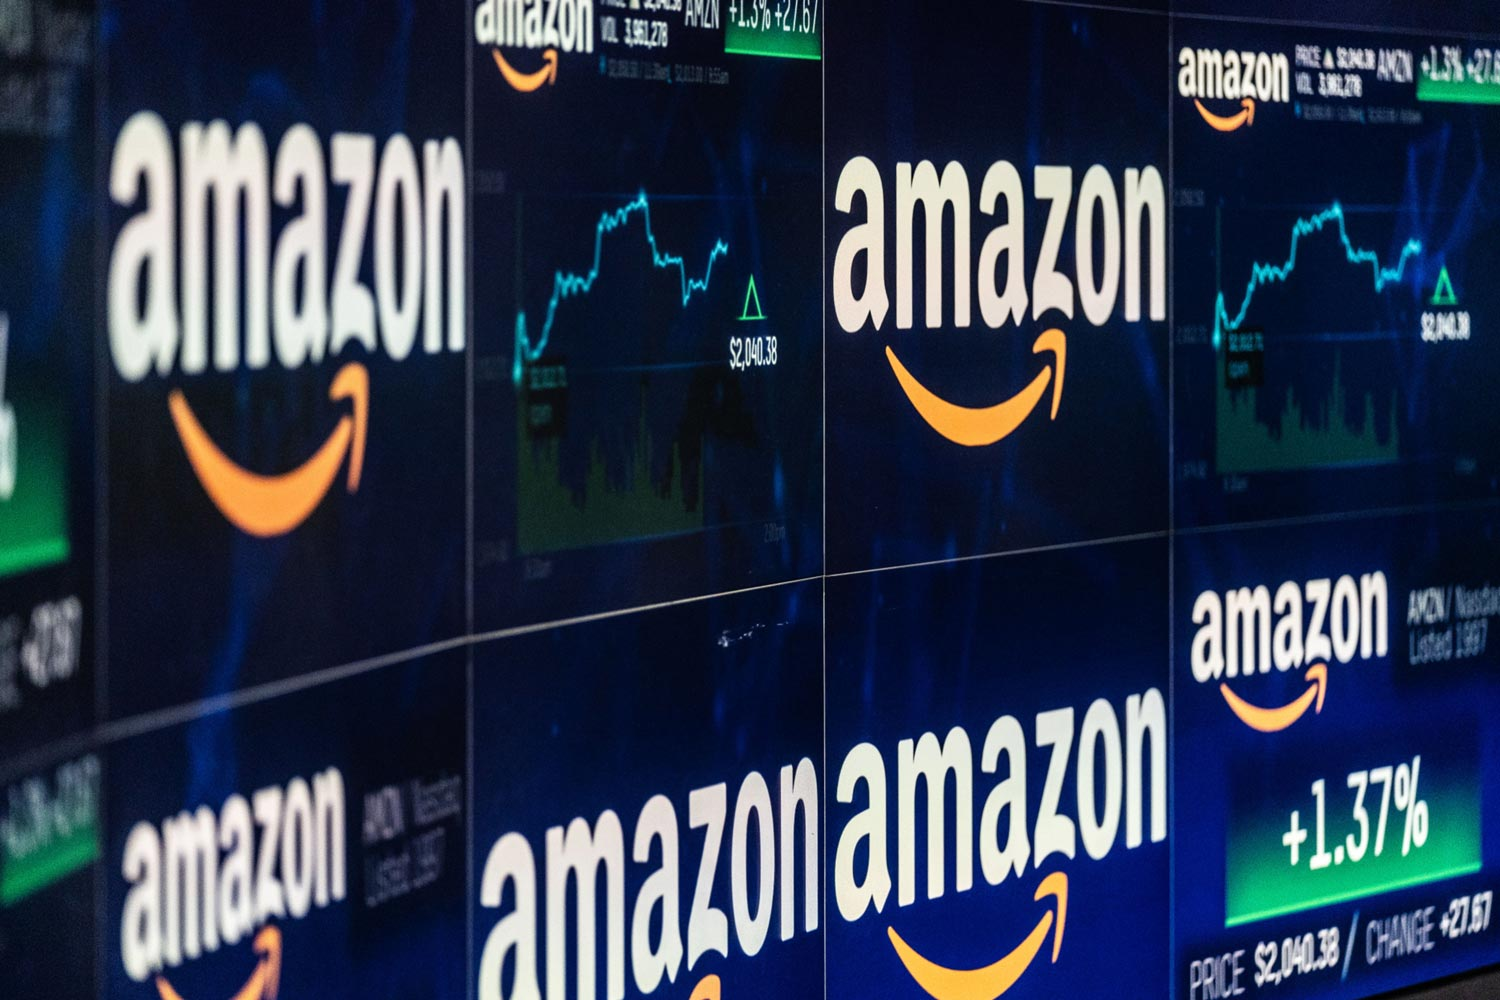 On its 25th birthday, Amazon tops U.S. ad spending, while Twitter's blue checks go bust: Thursday Wake-Up Call